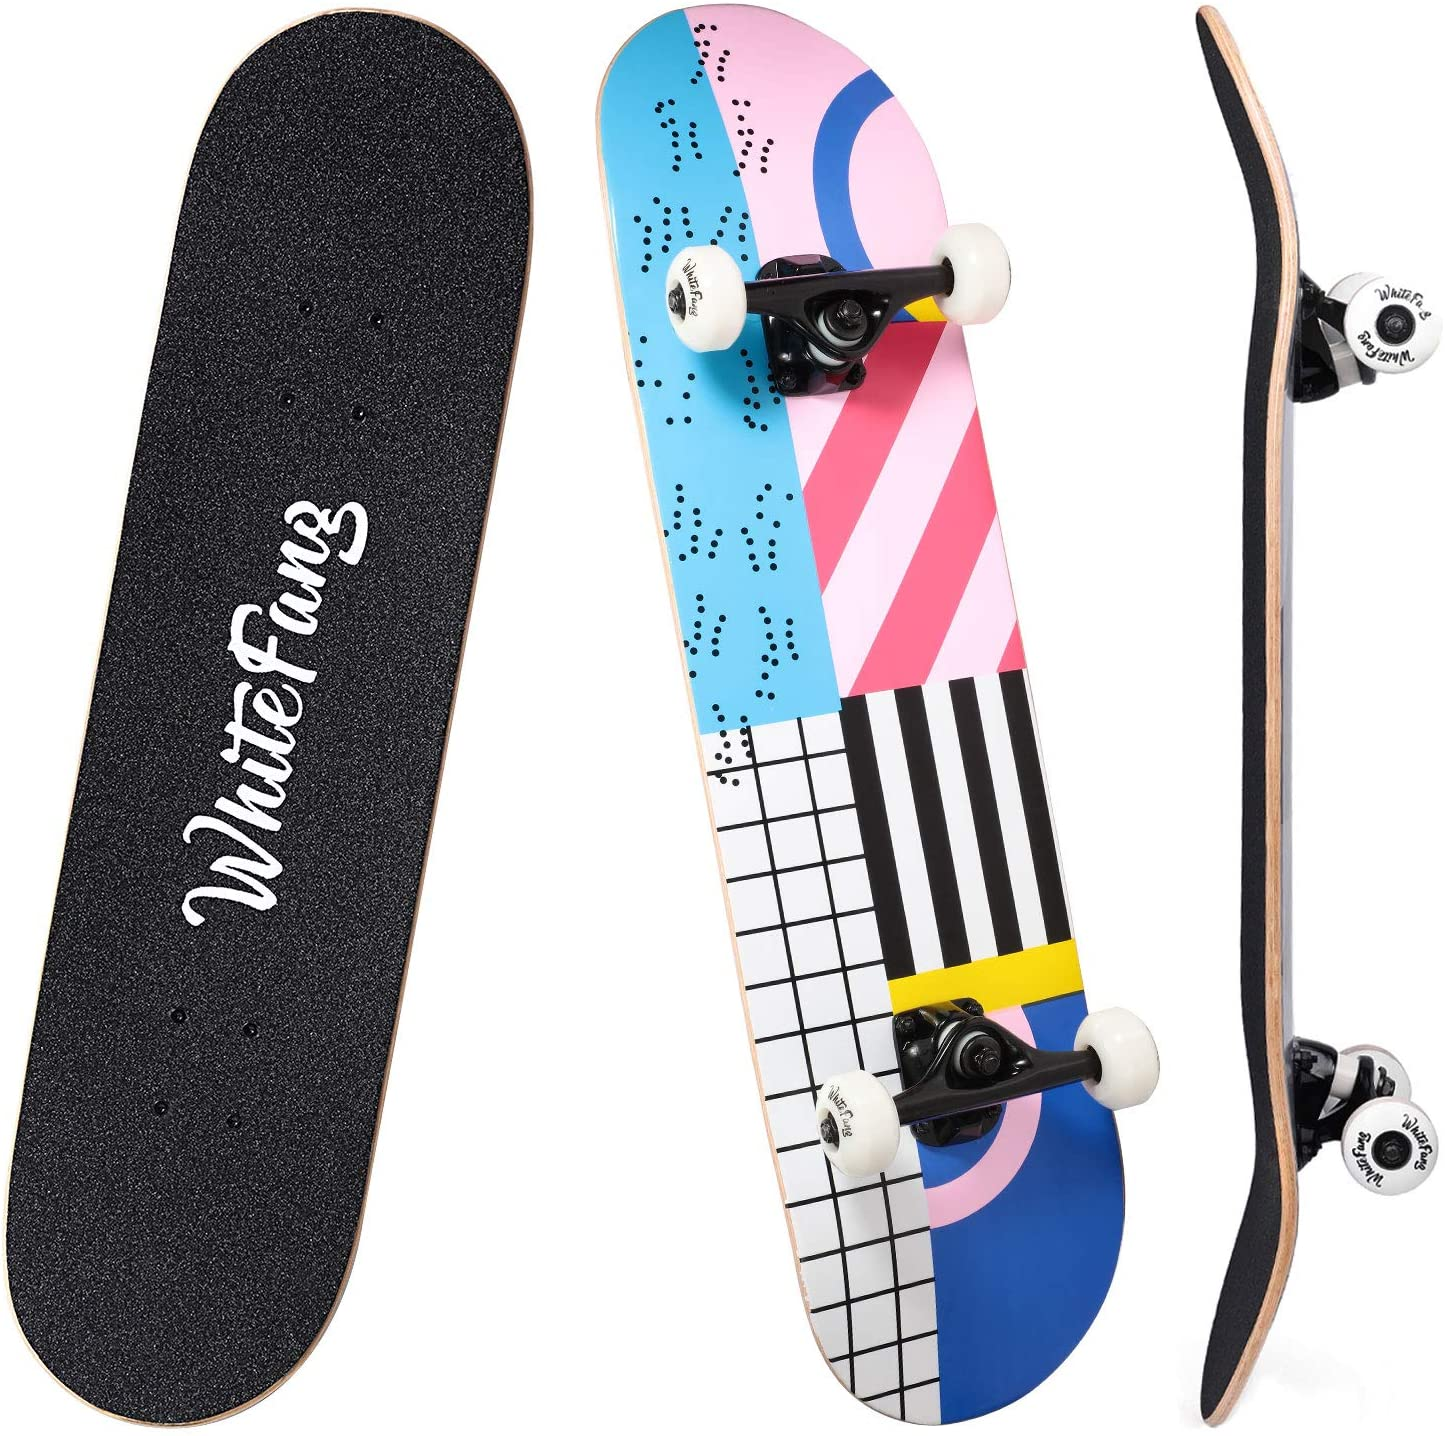 WhiteFang Skateboards Complete Skateboard for Kids